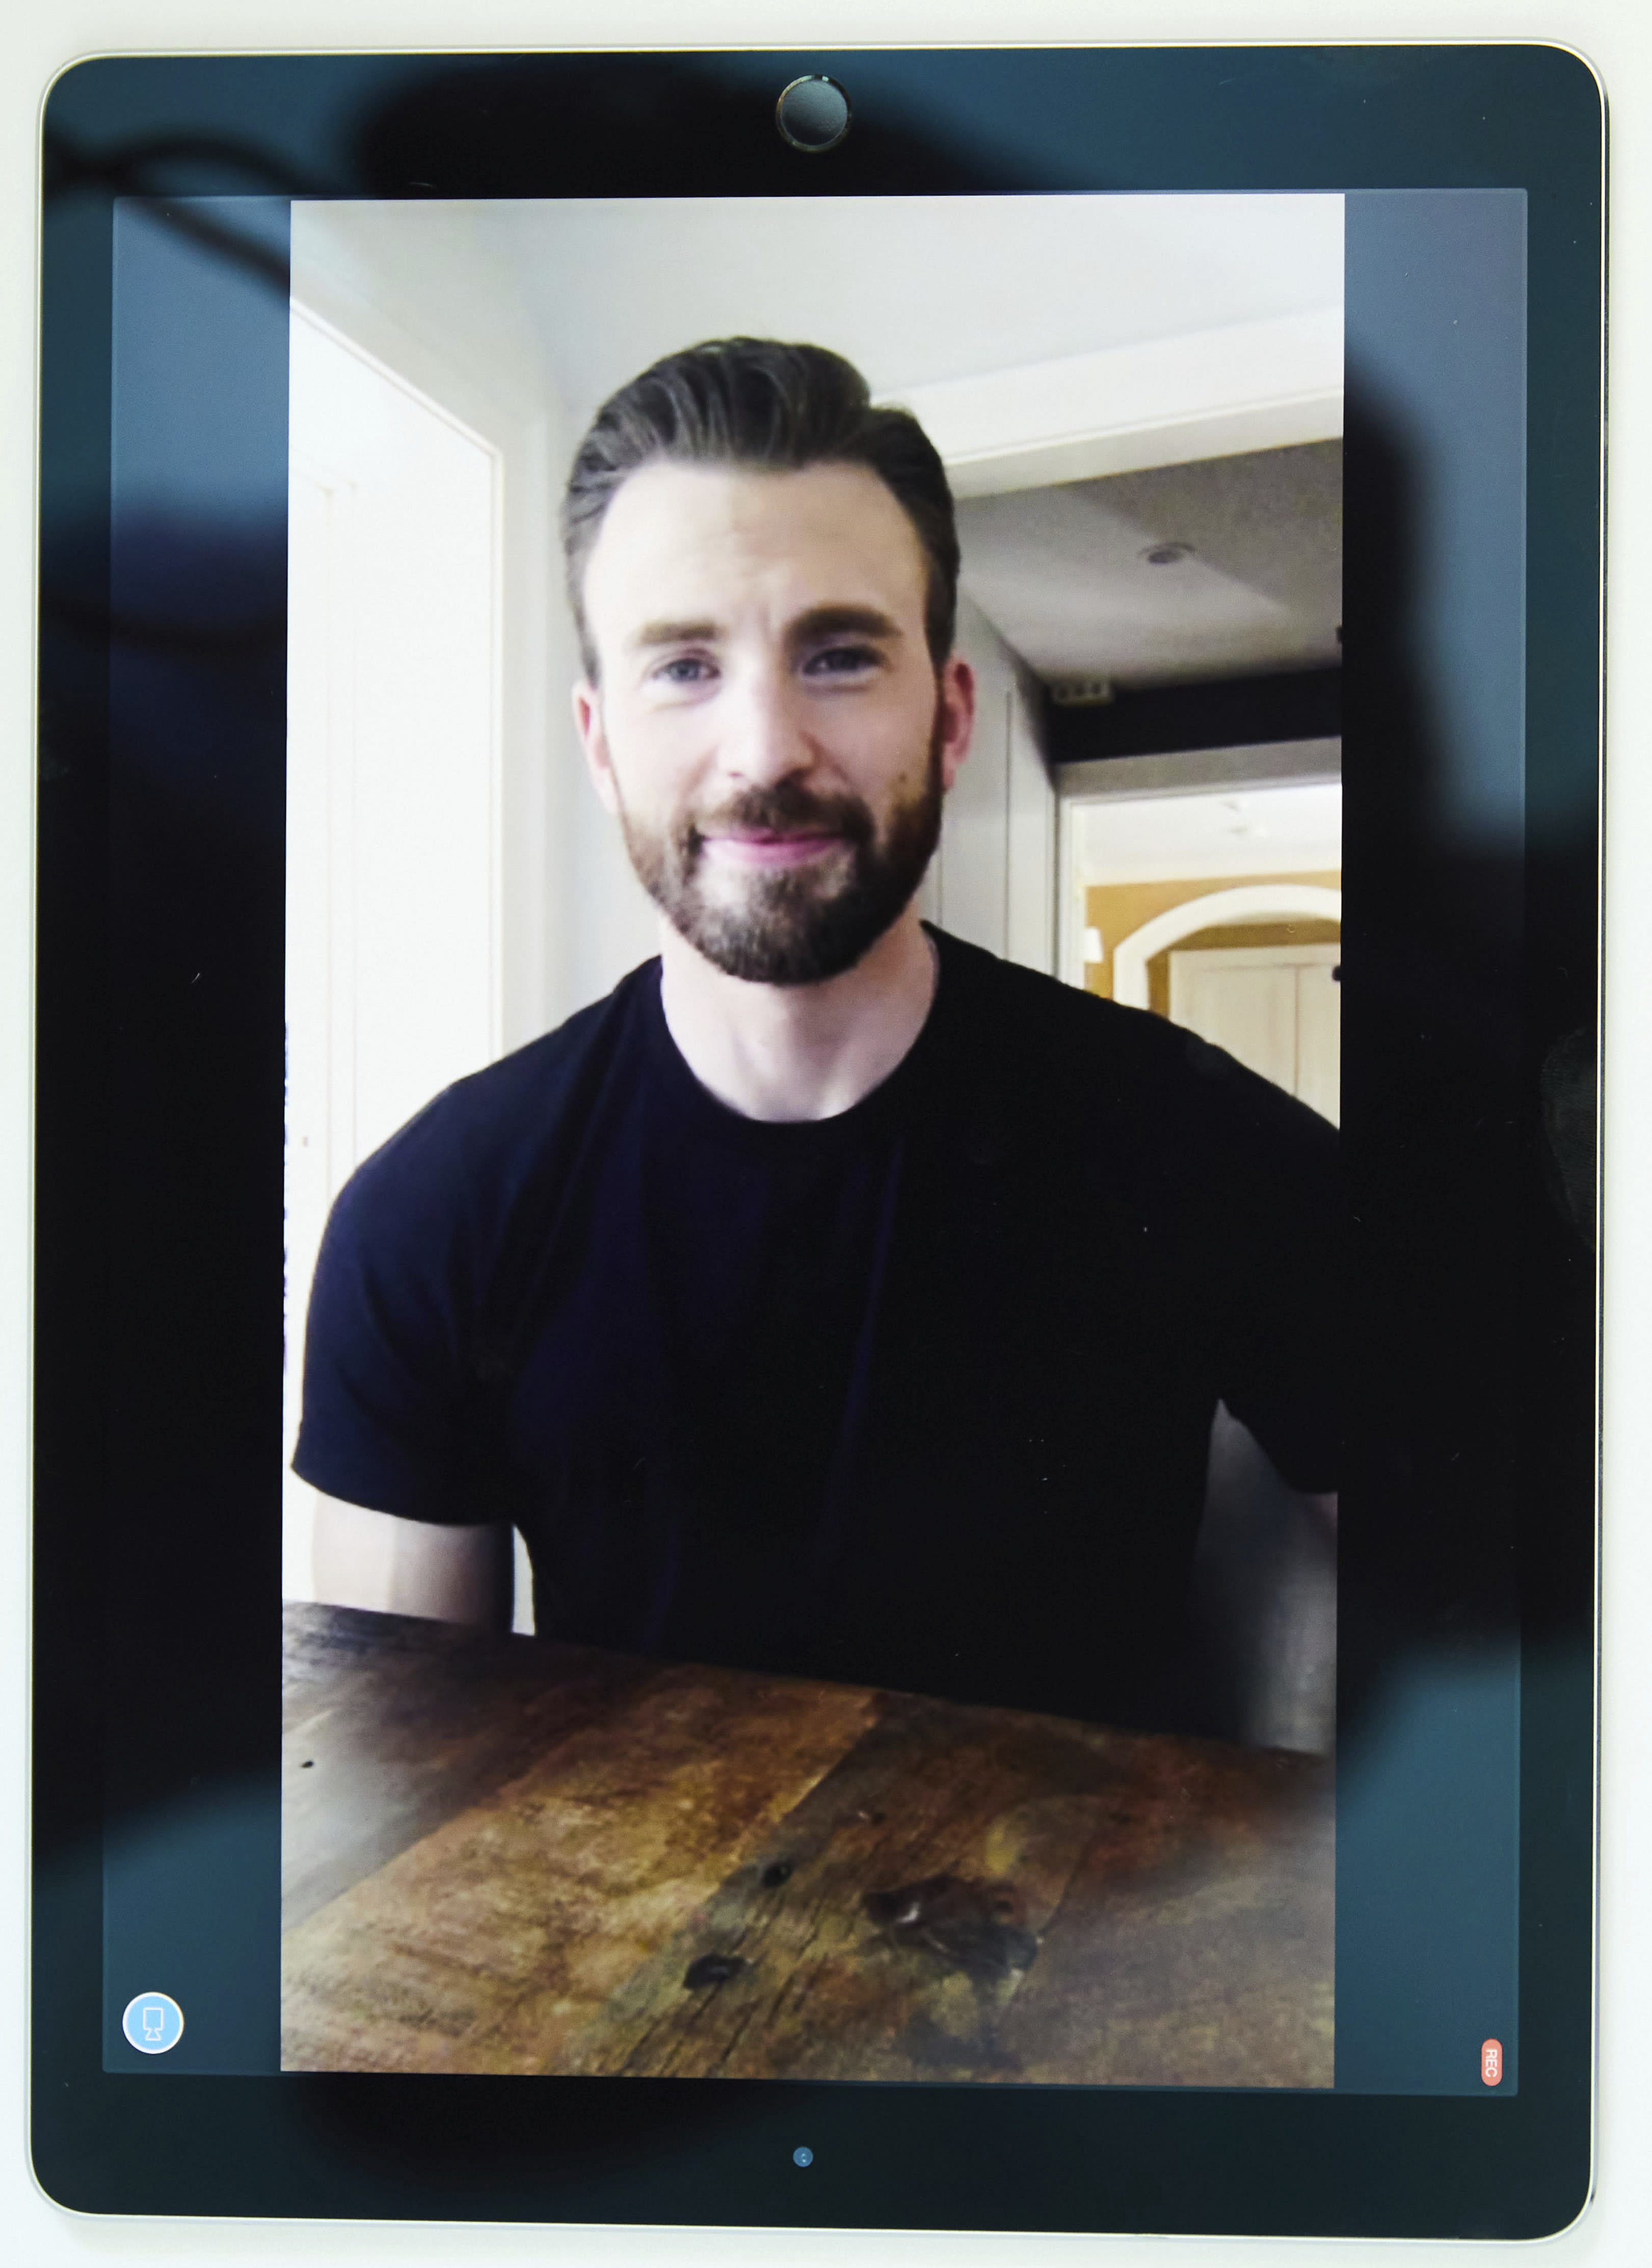 """In this July 30, 2020 photo, Chris Evans, co-founder of the civic engagement video-based app """"A Starting Point"""" with Mark Kassen, is photographed on a tablet during a remote portrait session with photographer in Los Angeles and subject in Boston, Mass. (Photo by Matt Sayles/Invision/AP)"""